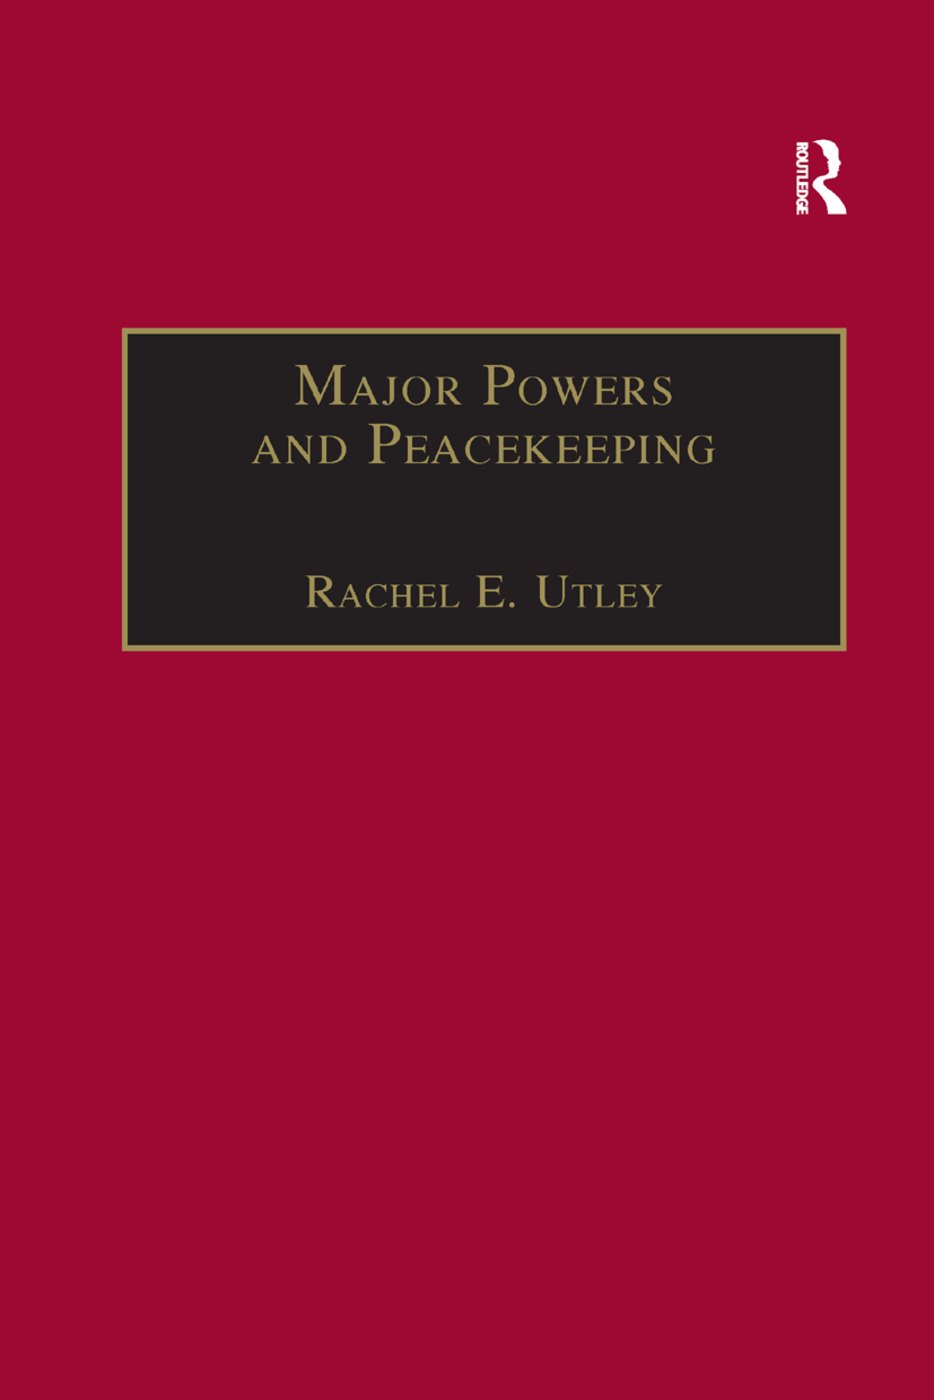 Major Powers and Peacekeeping: Perspectives, Priorities and the Challenges of Military Intervention book cover